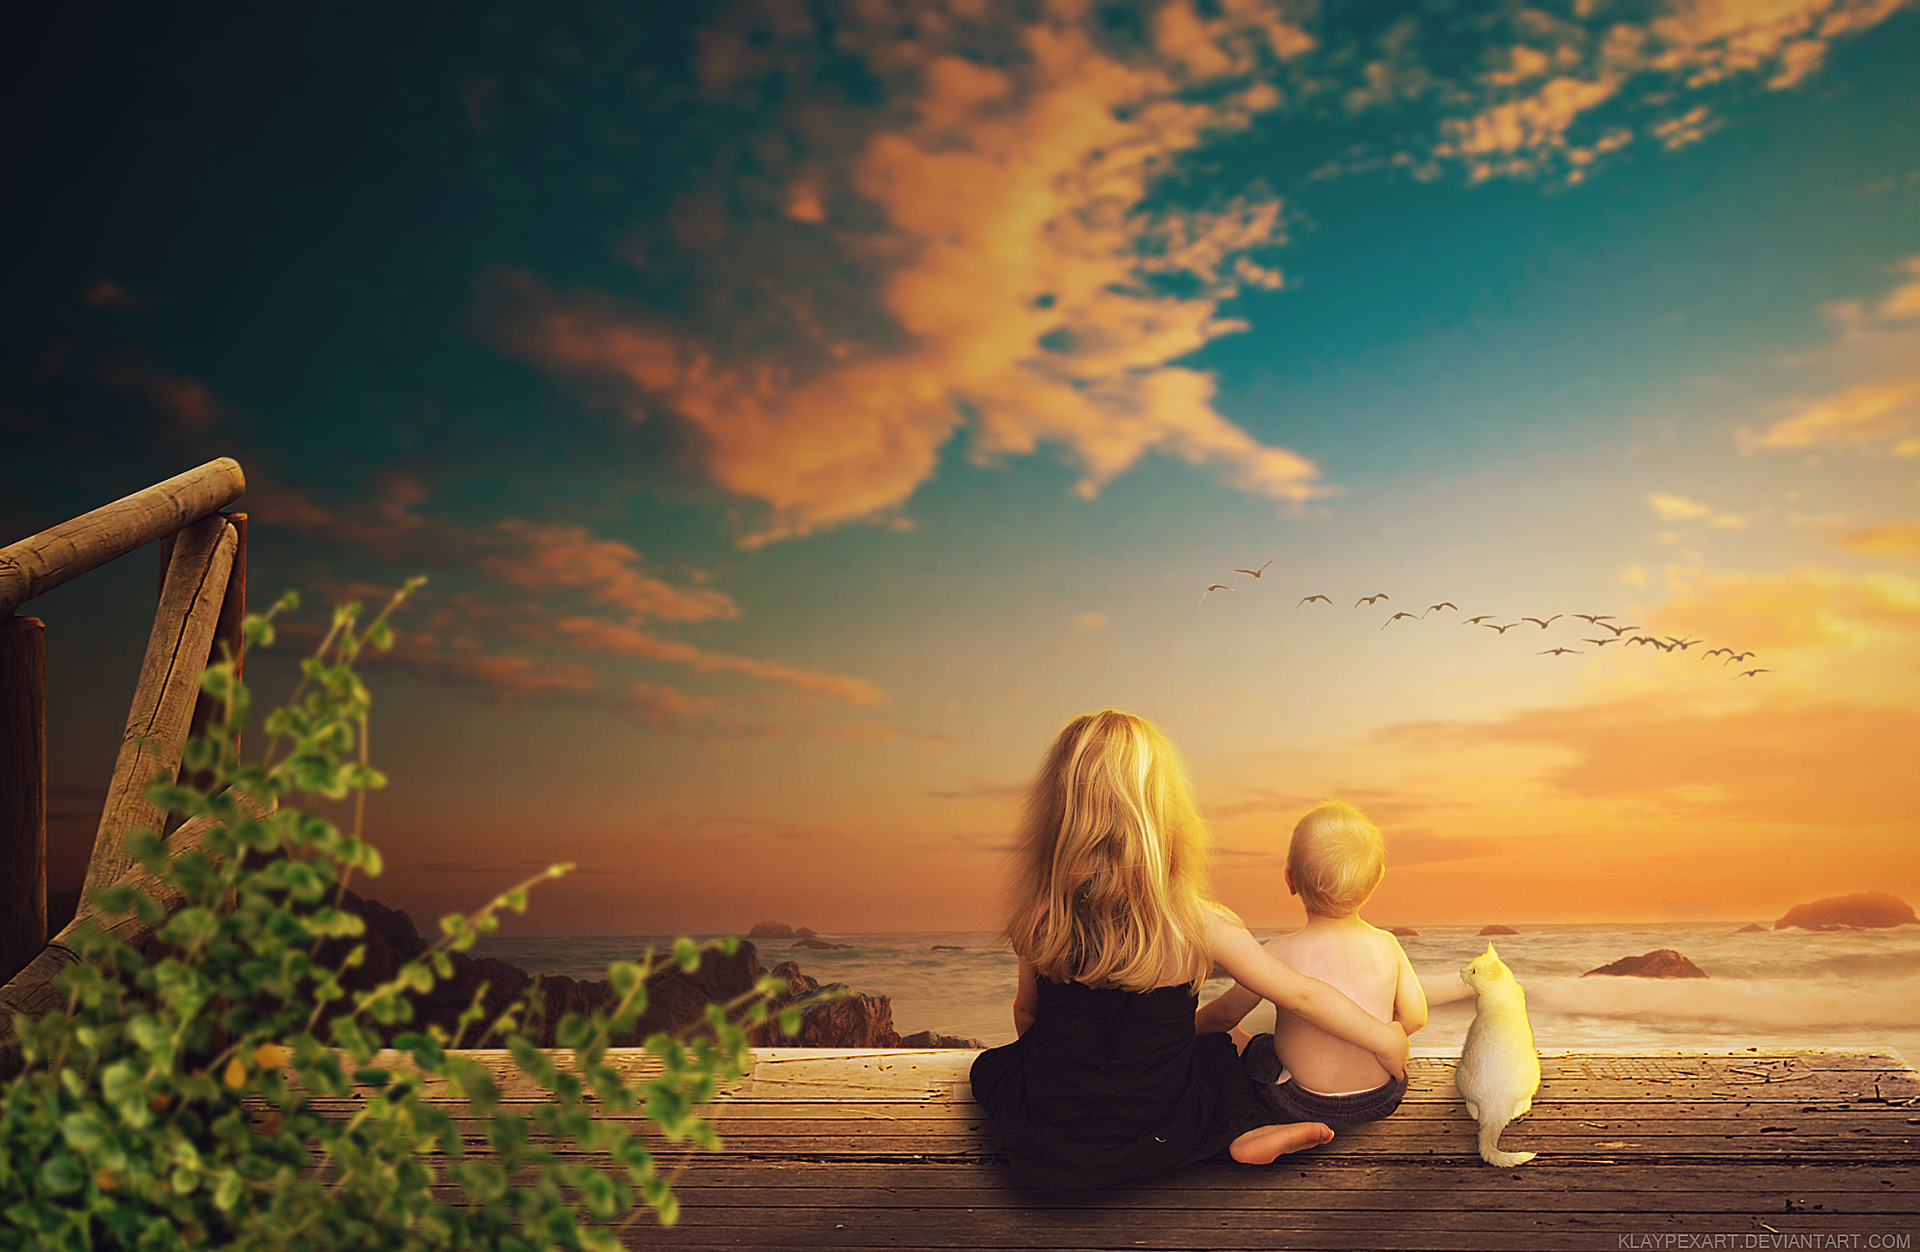 Artistic - Fantasy  Artistic Little Girl Little Boy Cat Sunset Ocean Wallpaper